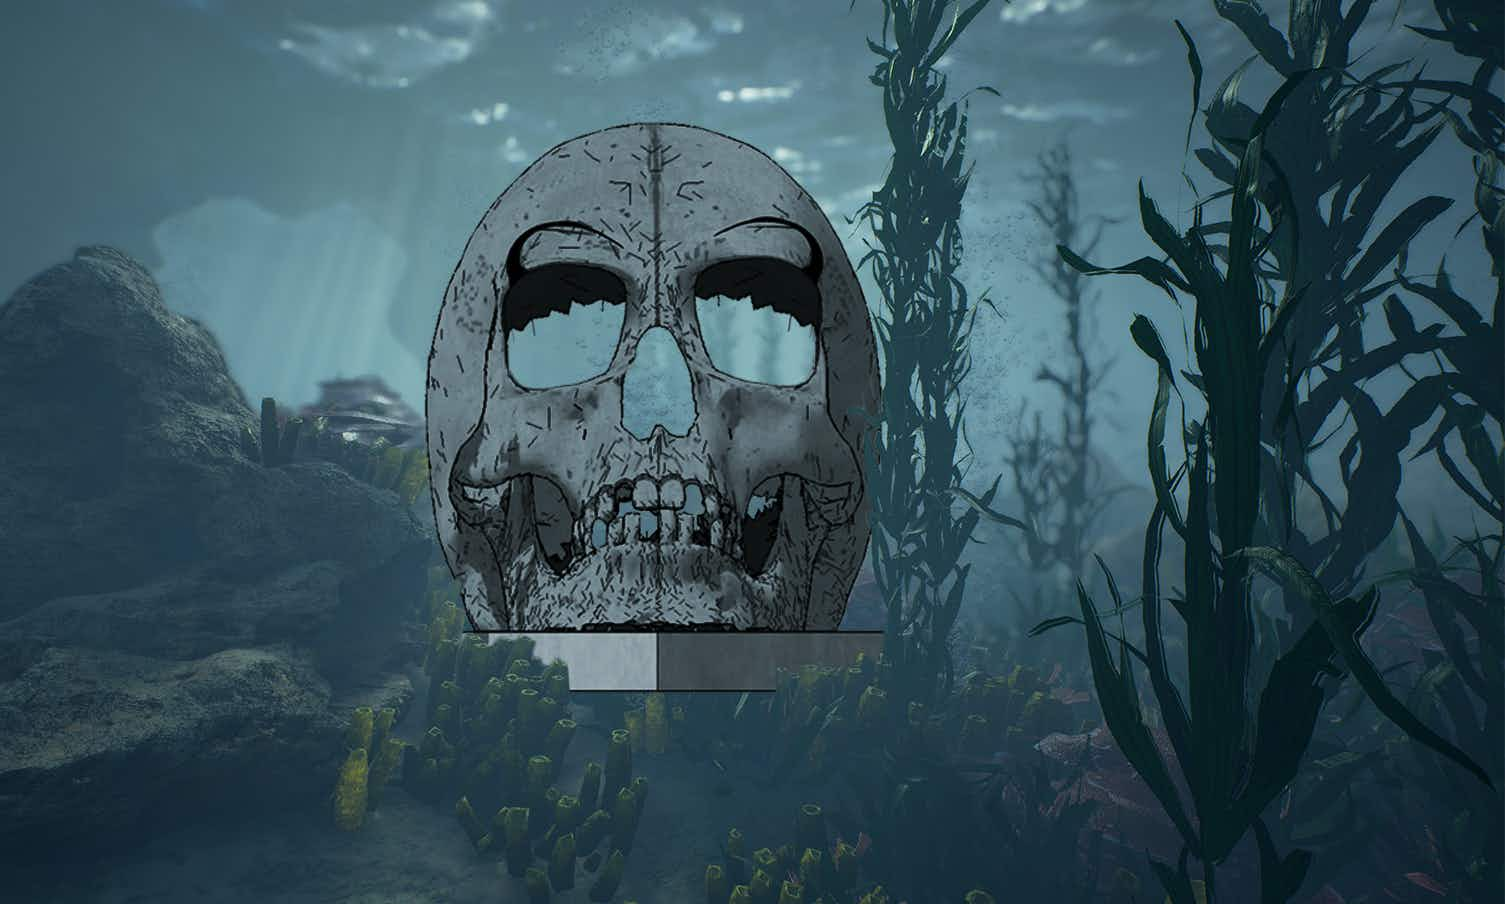 The USA's first underwater museum is opening next summer in Florida